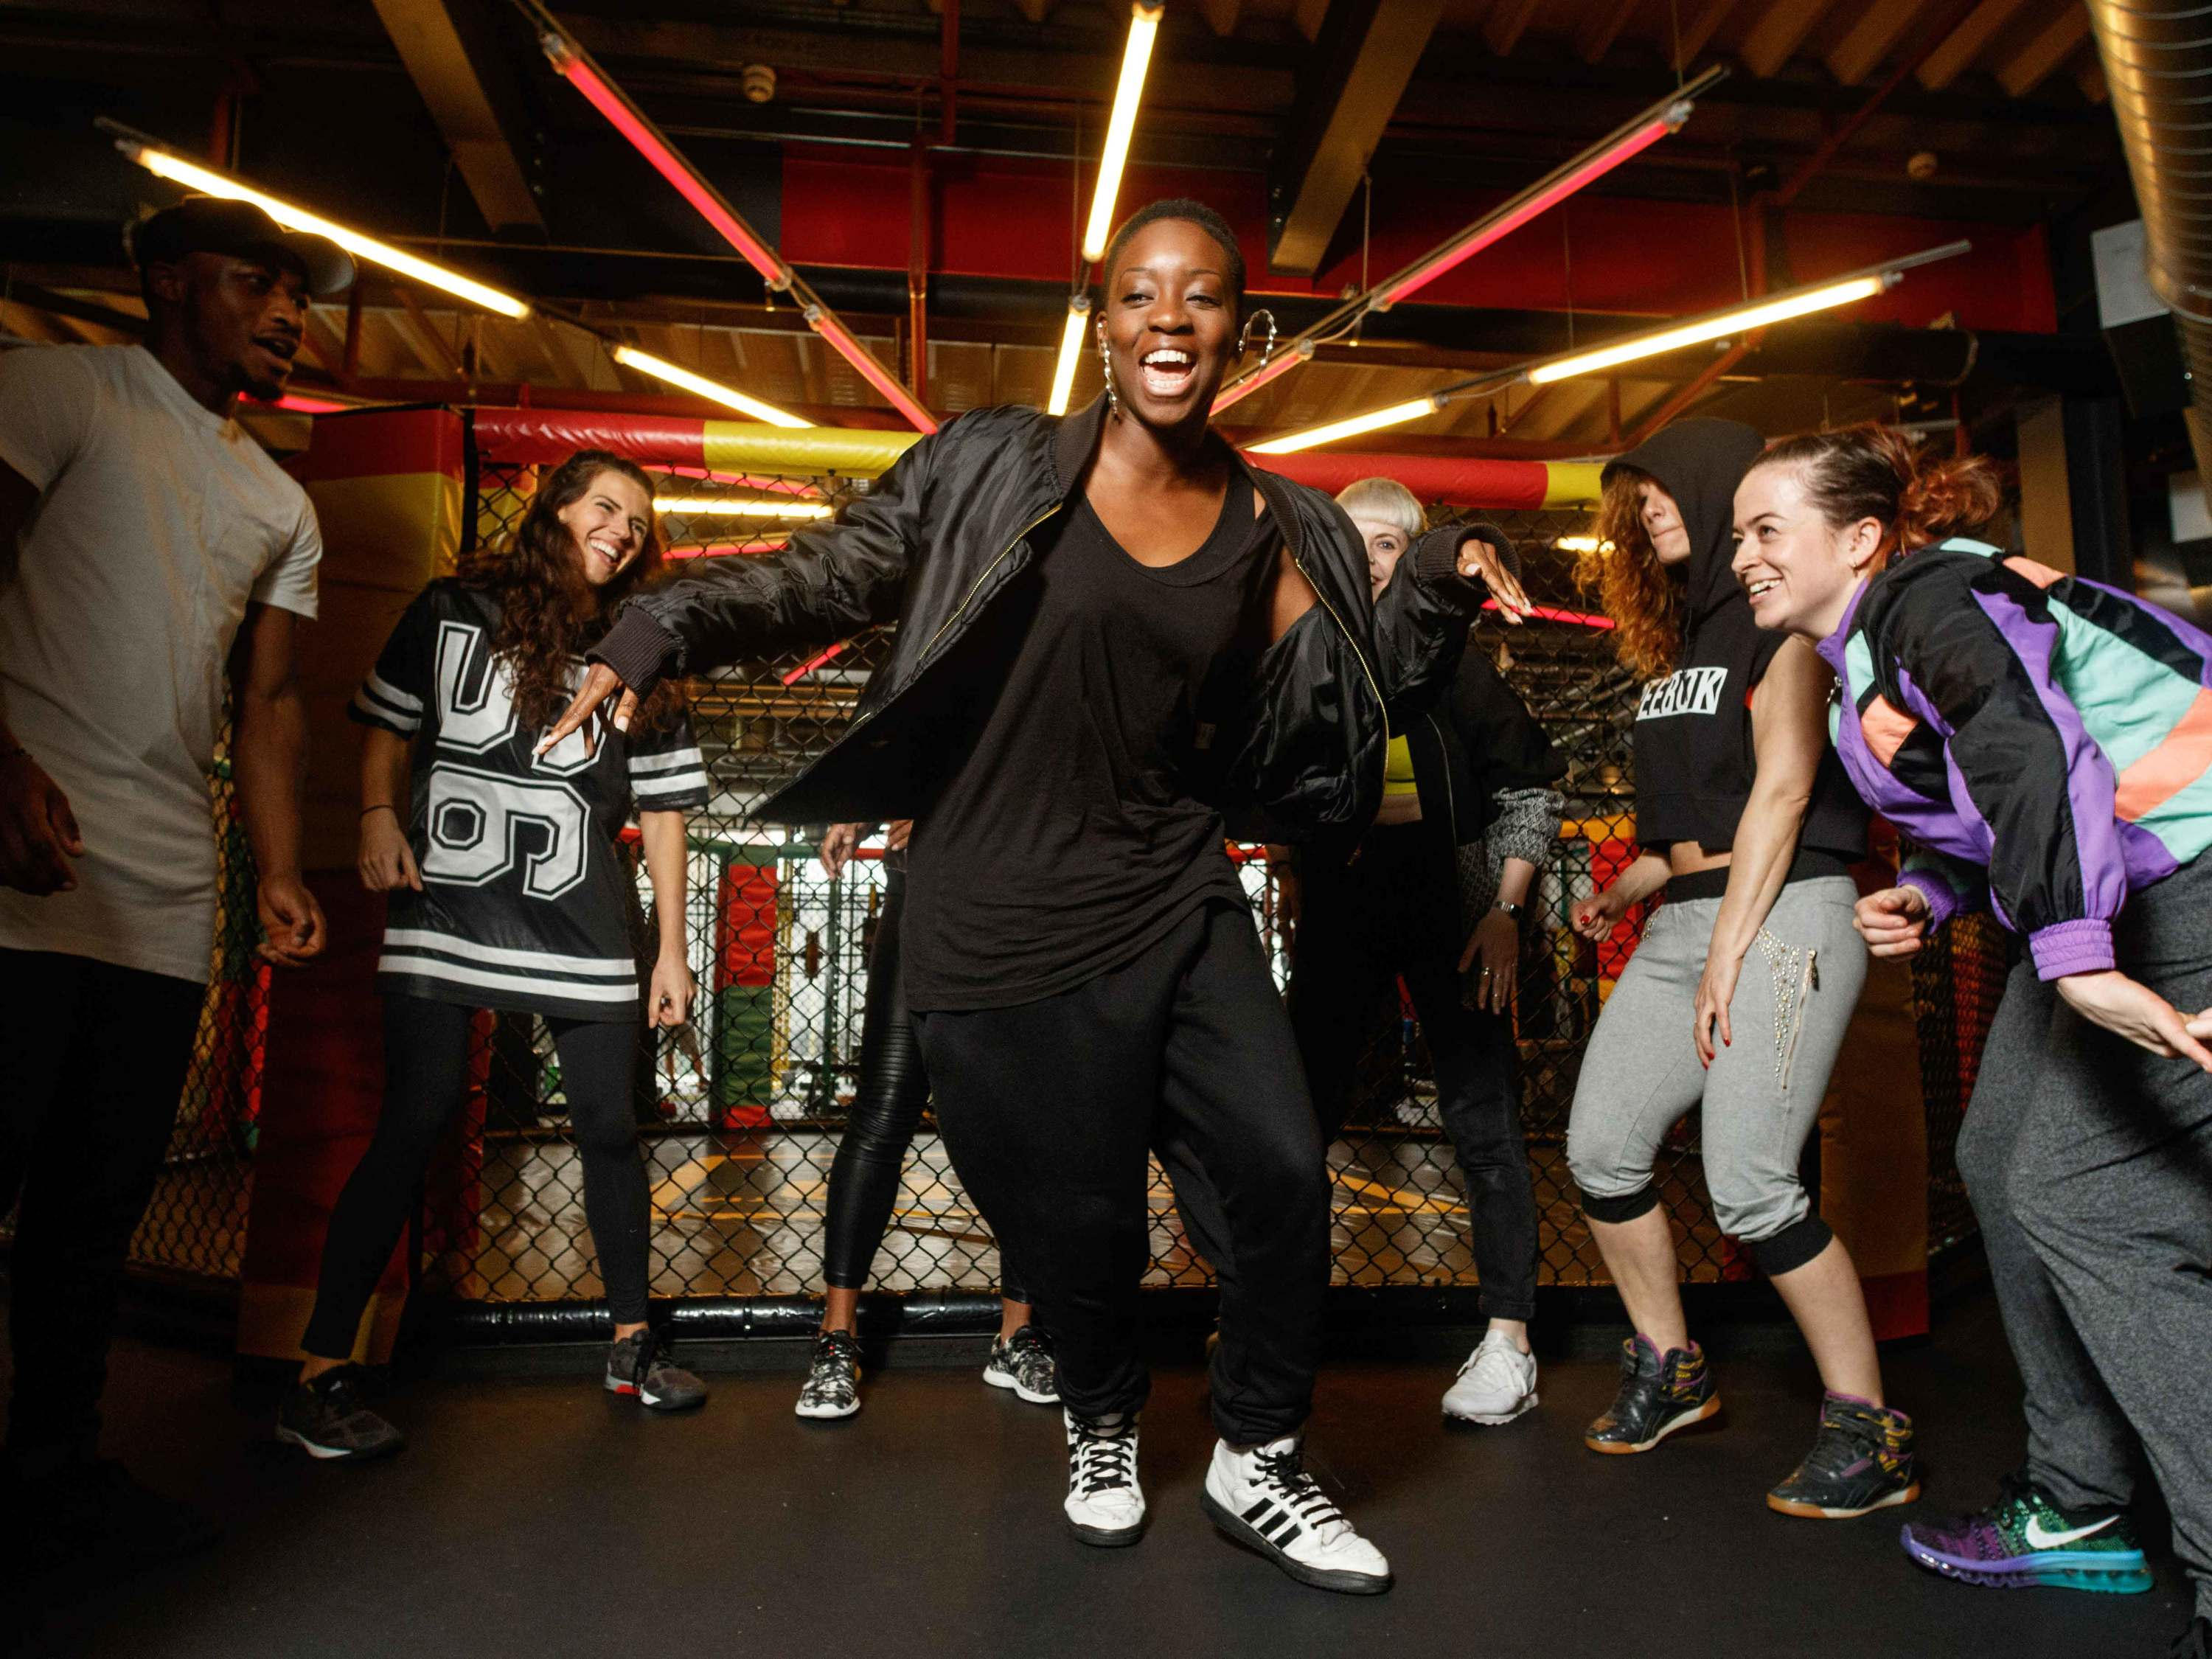 The best dance classes in London, new jack swing at gymbox